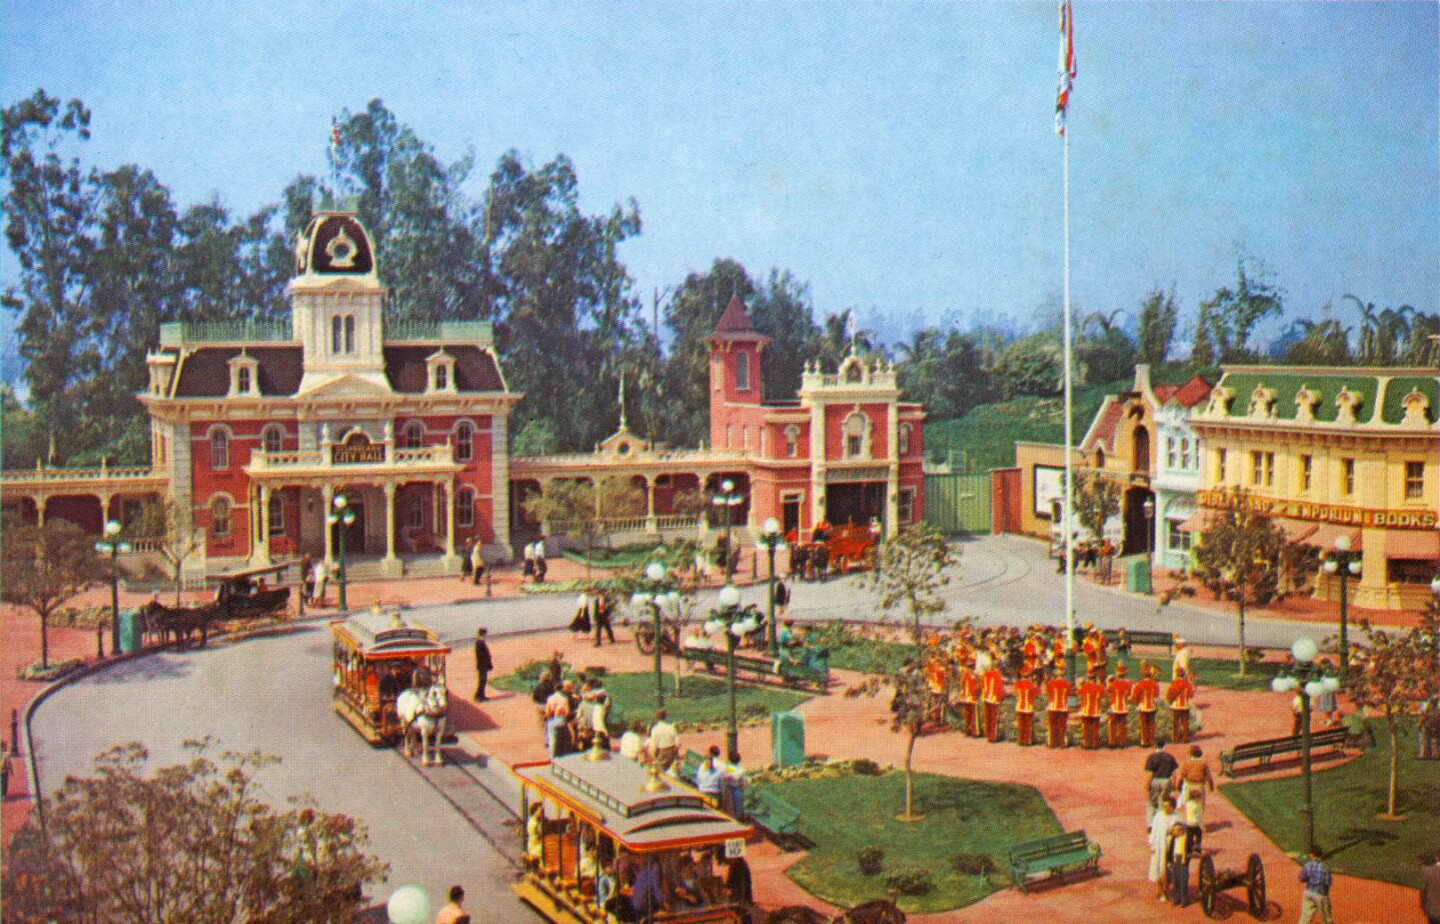 Town Square, Main Street, USA, 1957